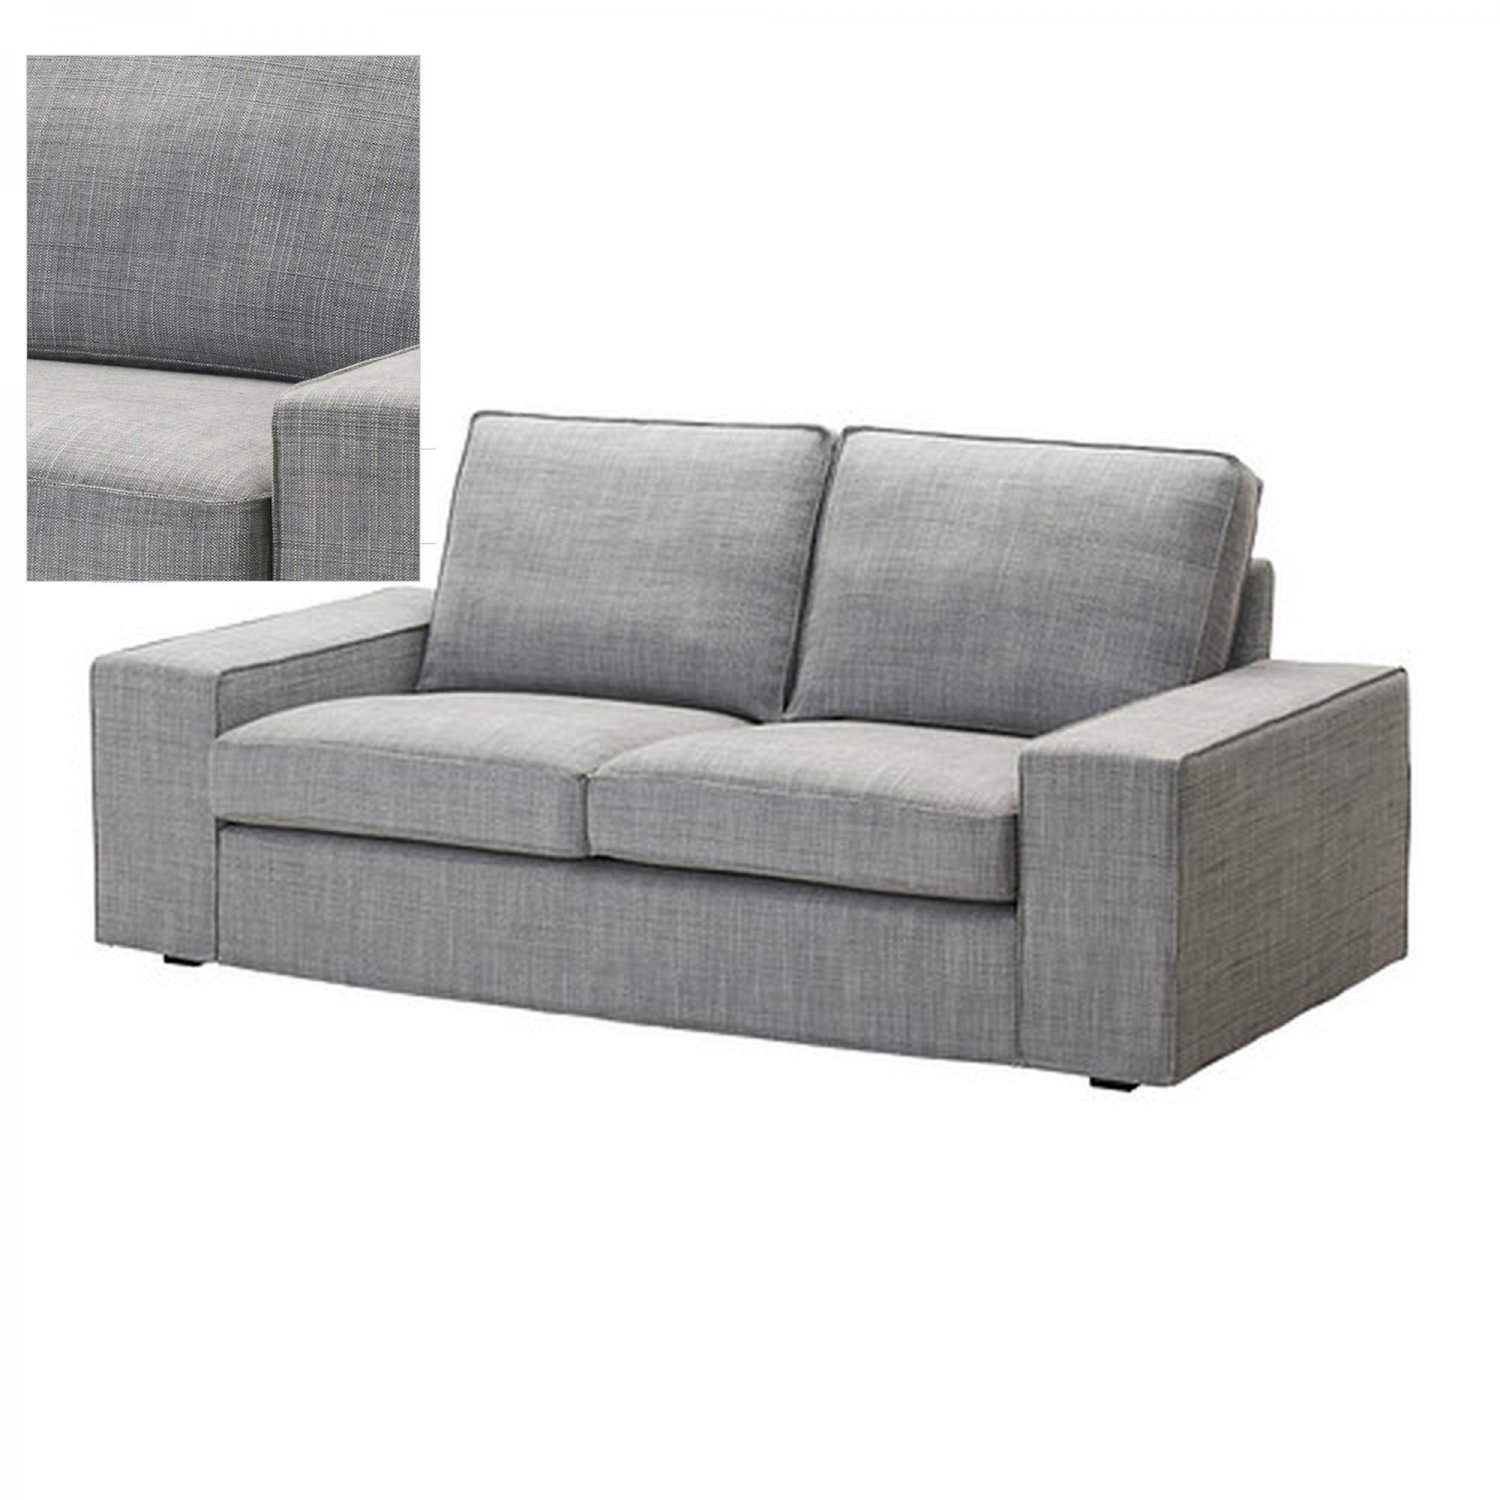 Slipcovers For Sofas With Cushions Separate | Club Chair Slipcover | Couch Covers